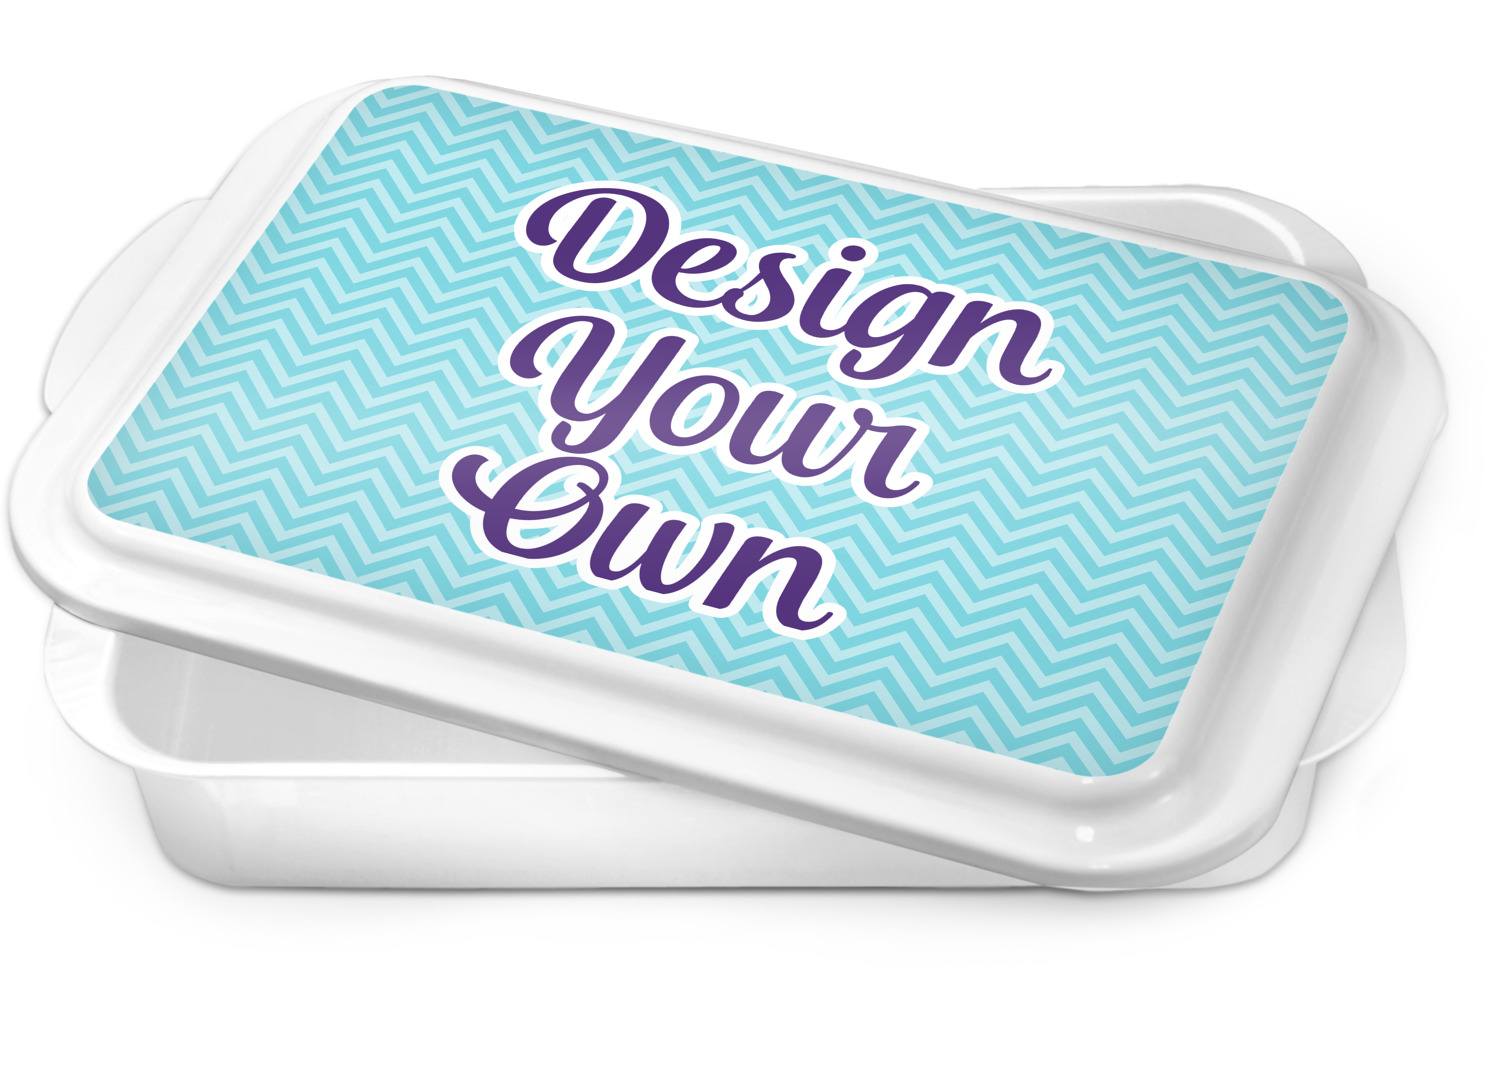 Design Your Own Cake Pan (Personalized) - YouCustomizeIt